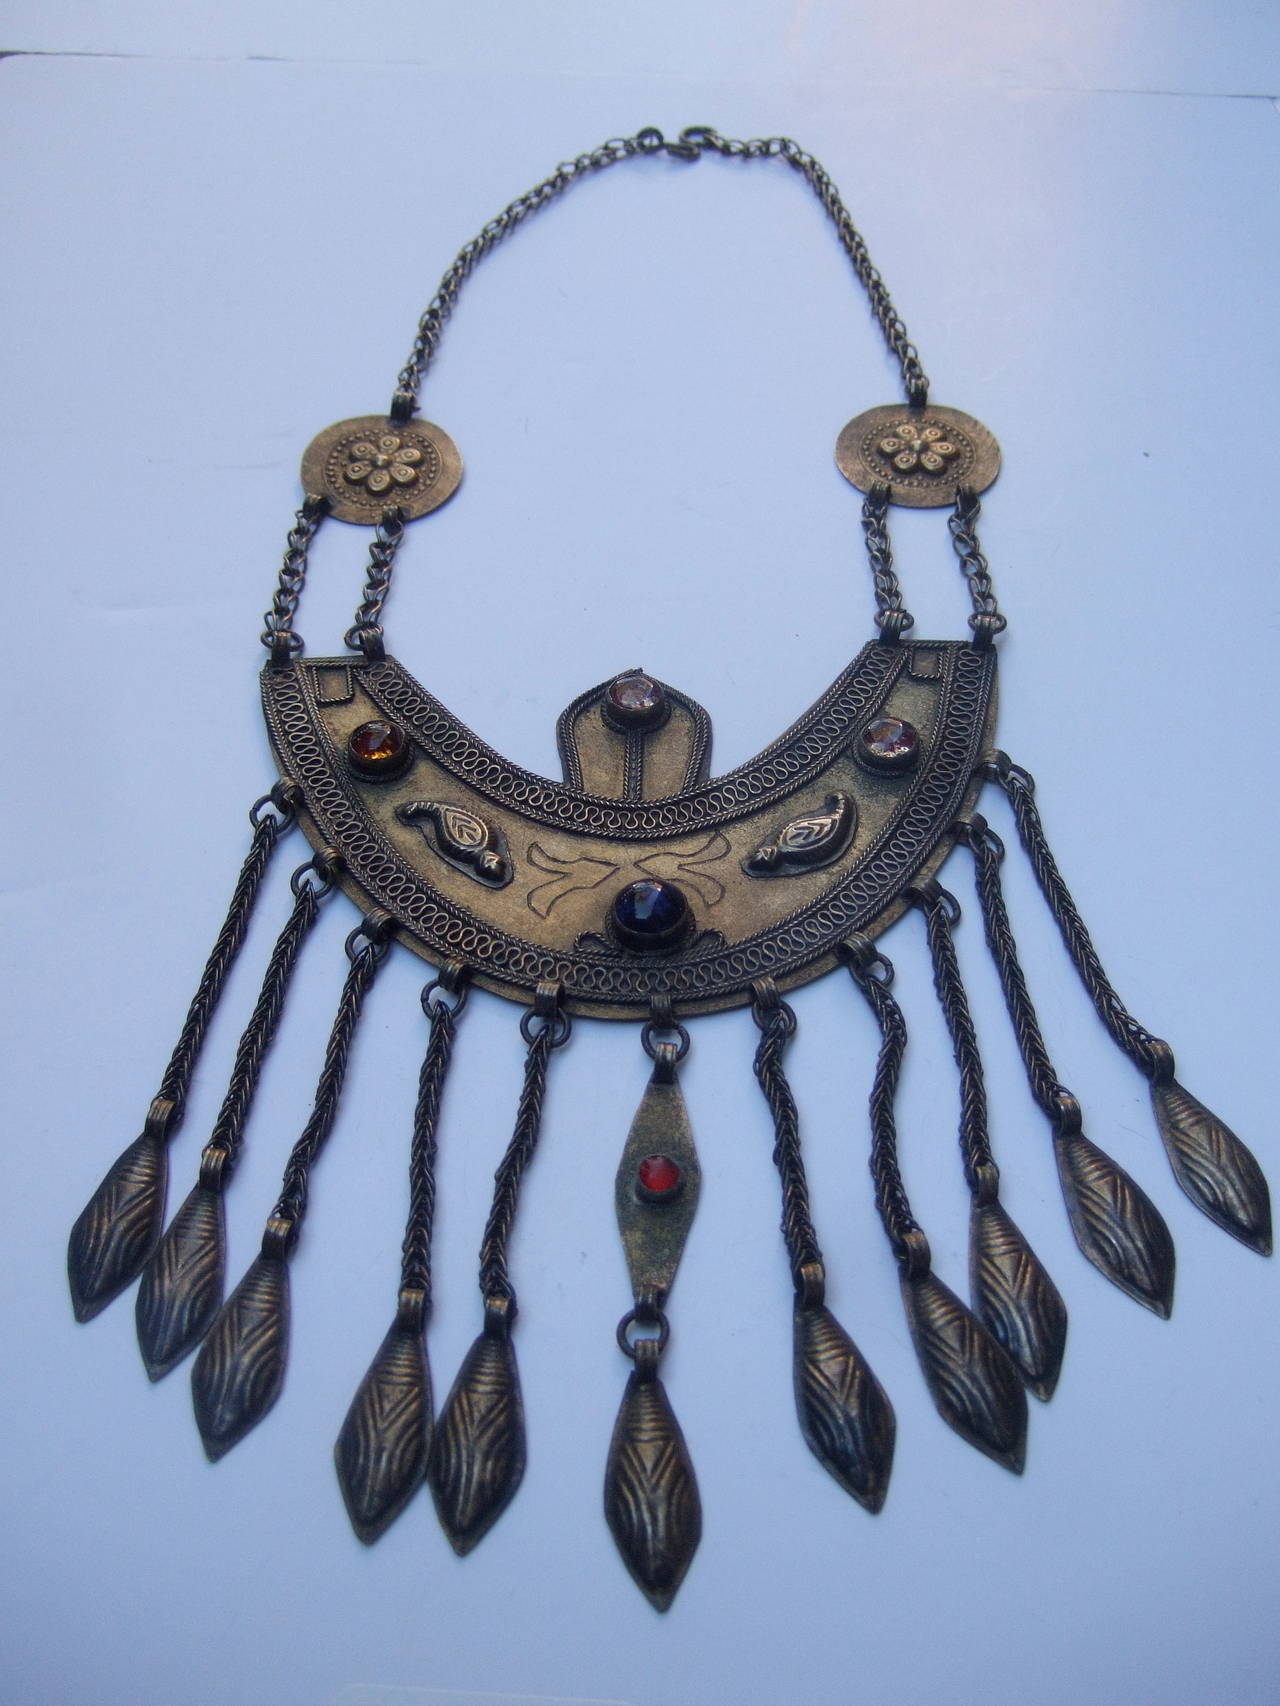 Massive Egyptian Revival style jeweled serpent ceremonial necklace c 1970s